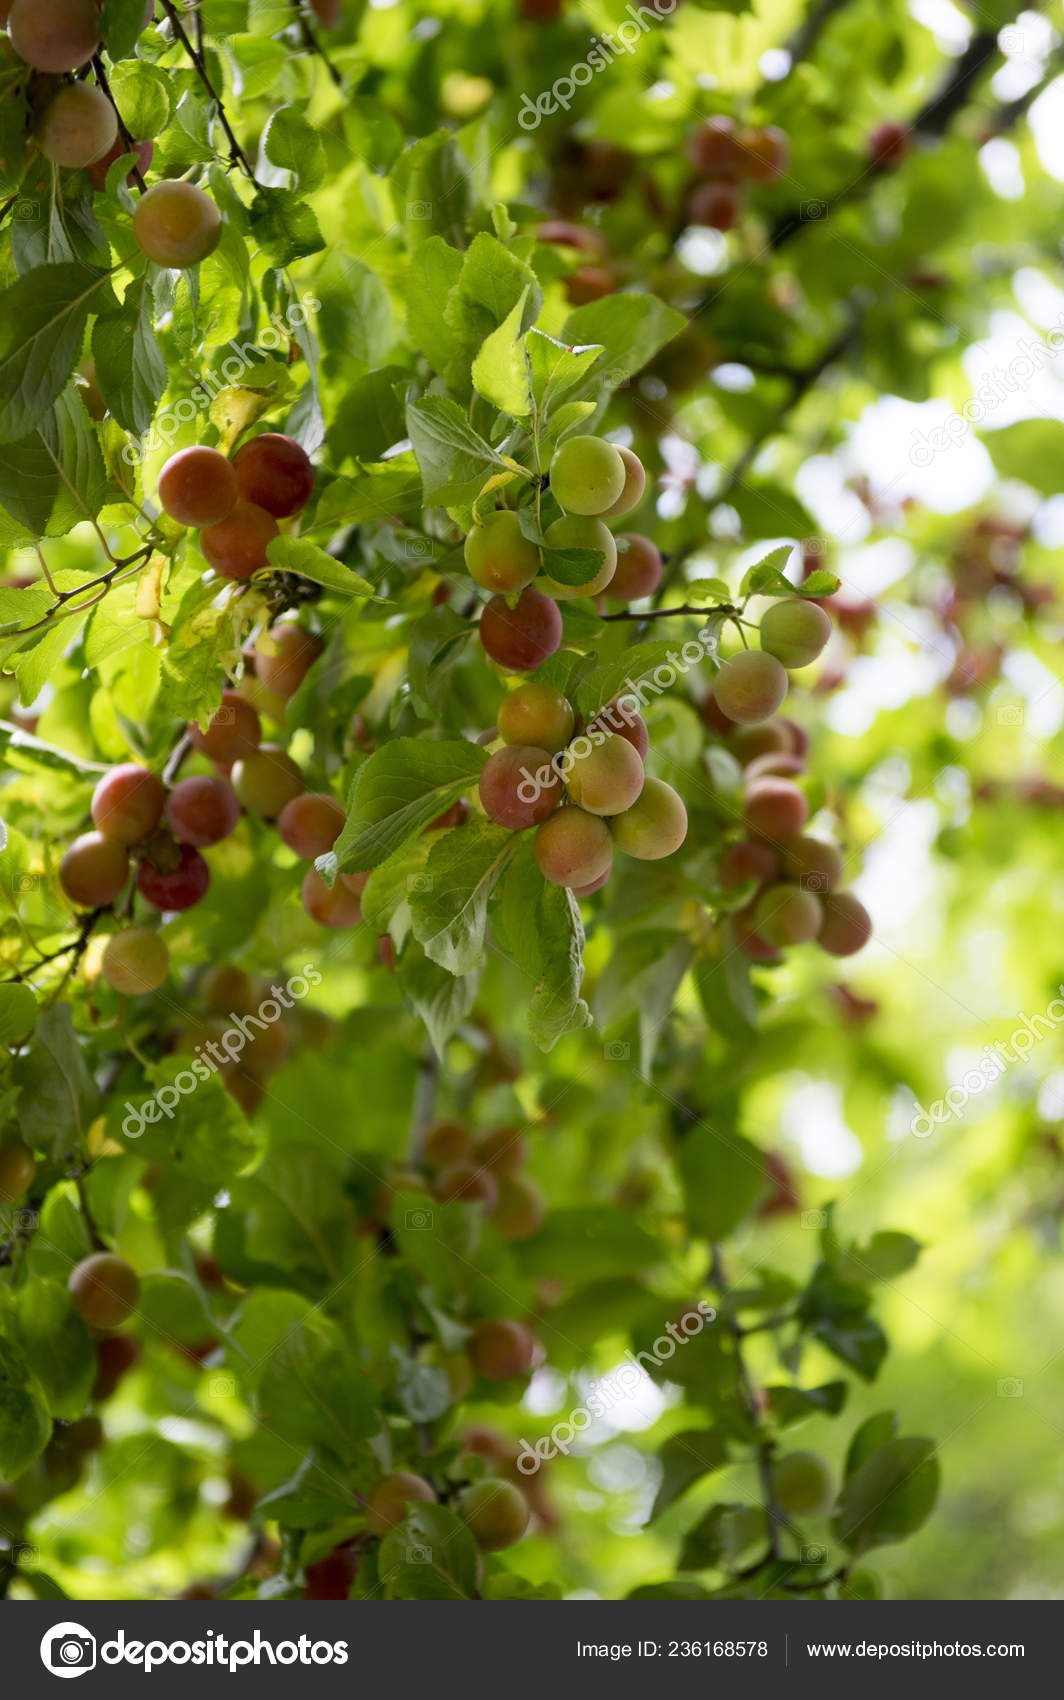 Prunus Cerasifera Cherry Plum Tree Myrobalan Plum Branches Full